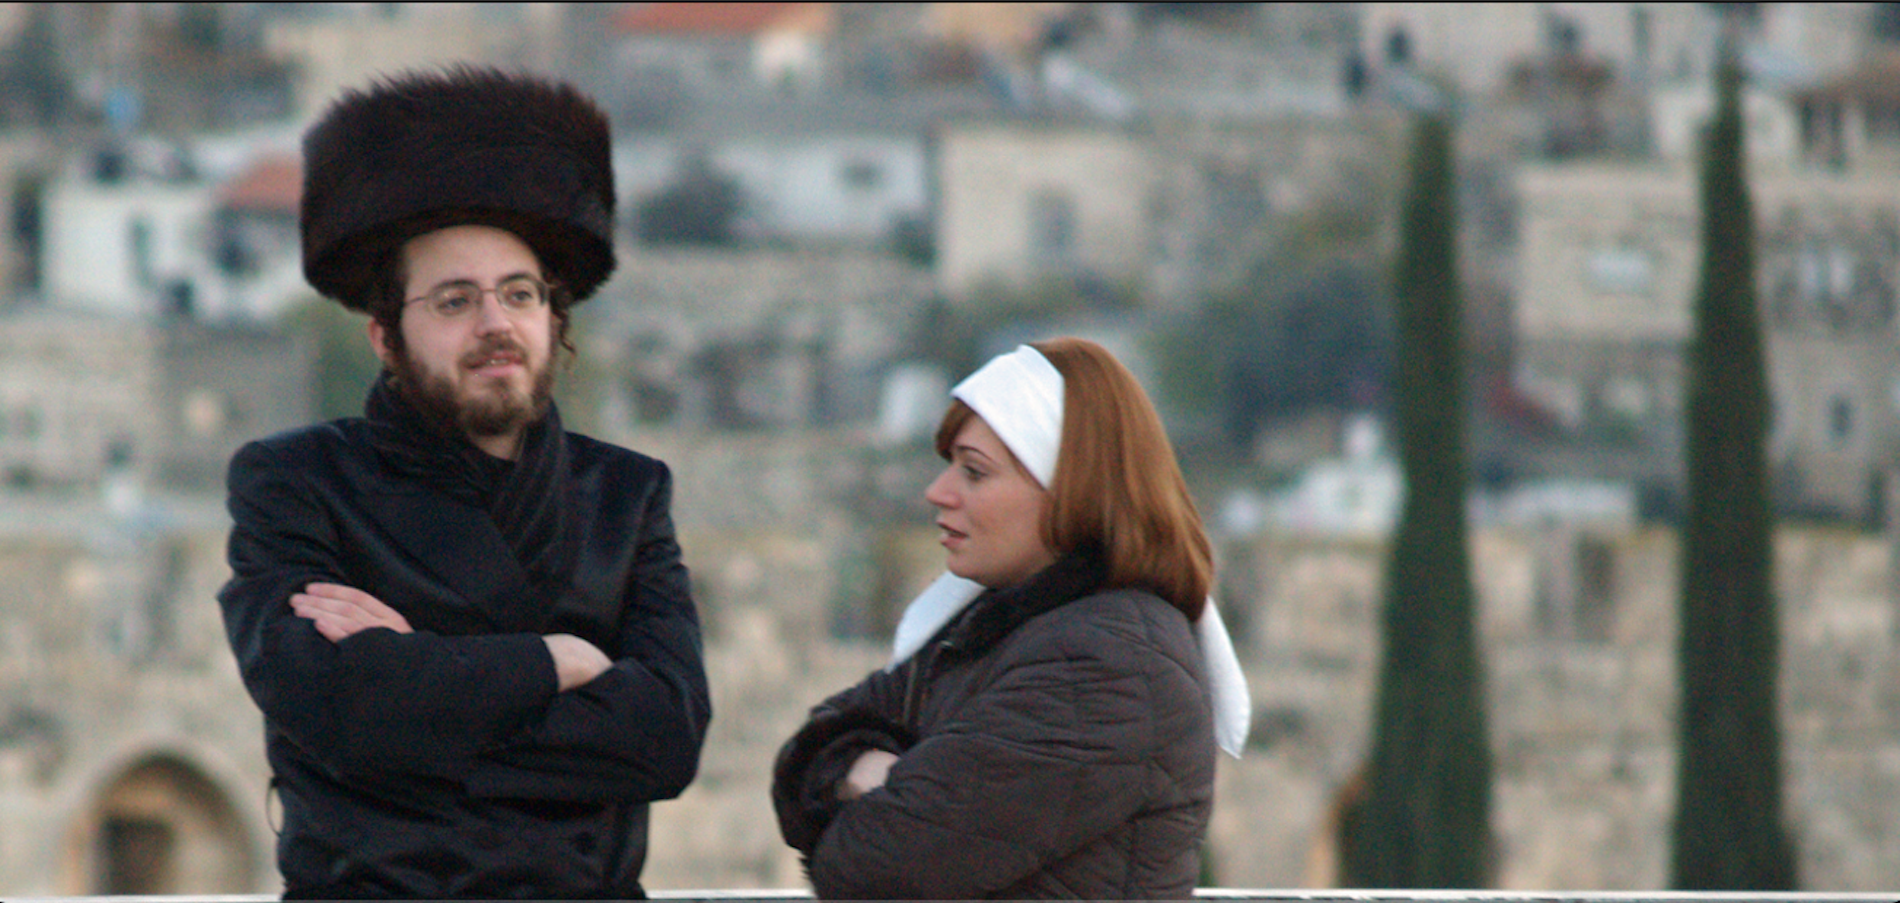 A Hasidic Jew Weighs In On Feeling Vulnerable With Increasing Attacks